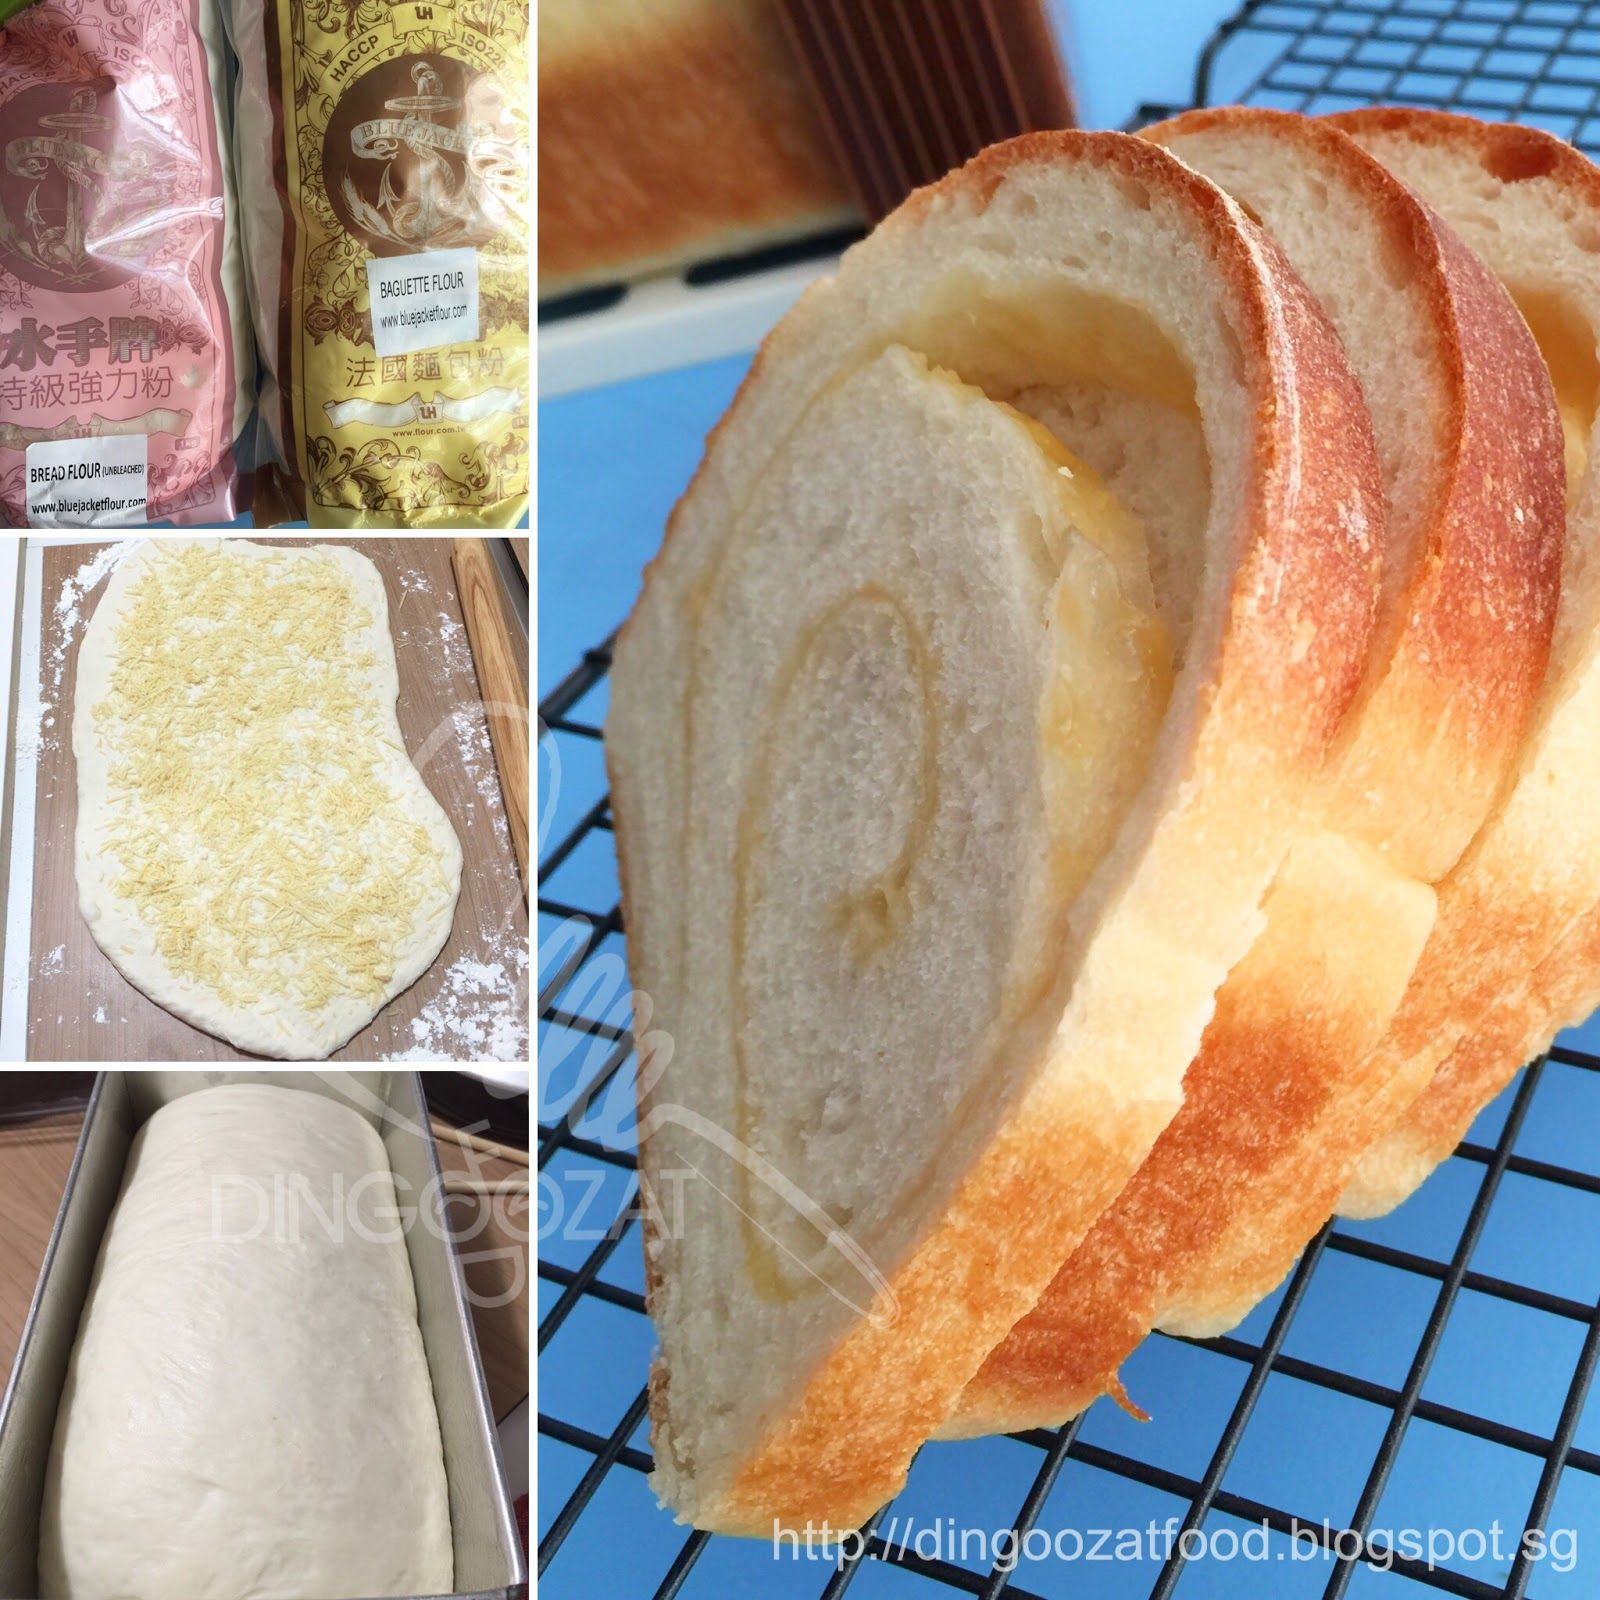 Parmesan French Bread 法国芝士面包 | Food, Homemade bread buns ...